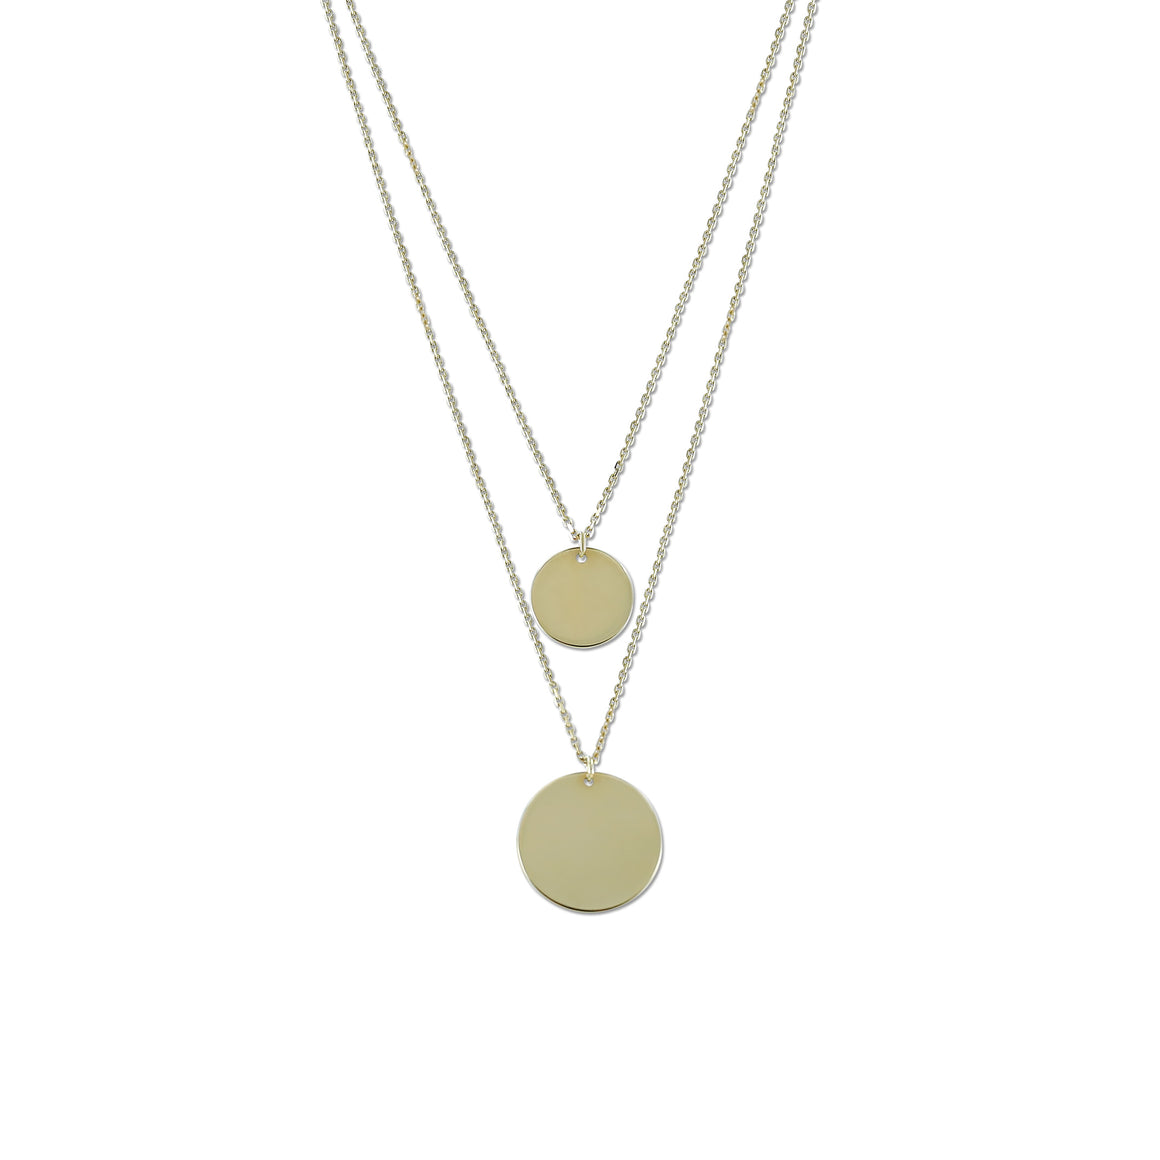 14k yellow gold double strand gold disk necklace 18in chain can adjust to 16in chain